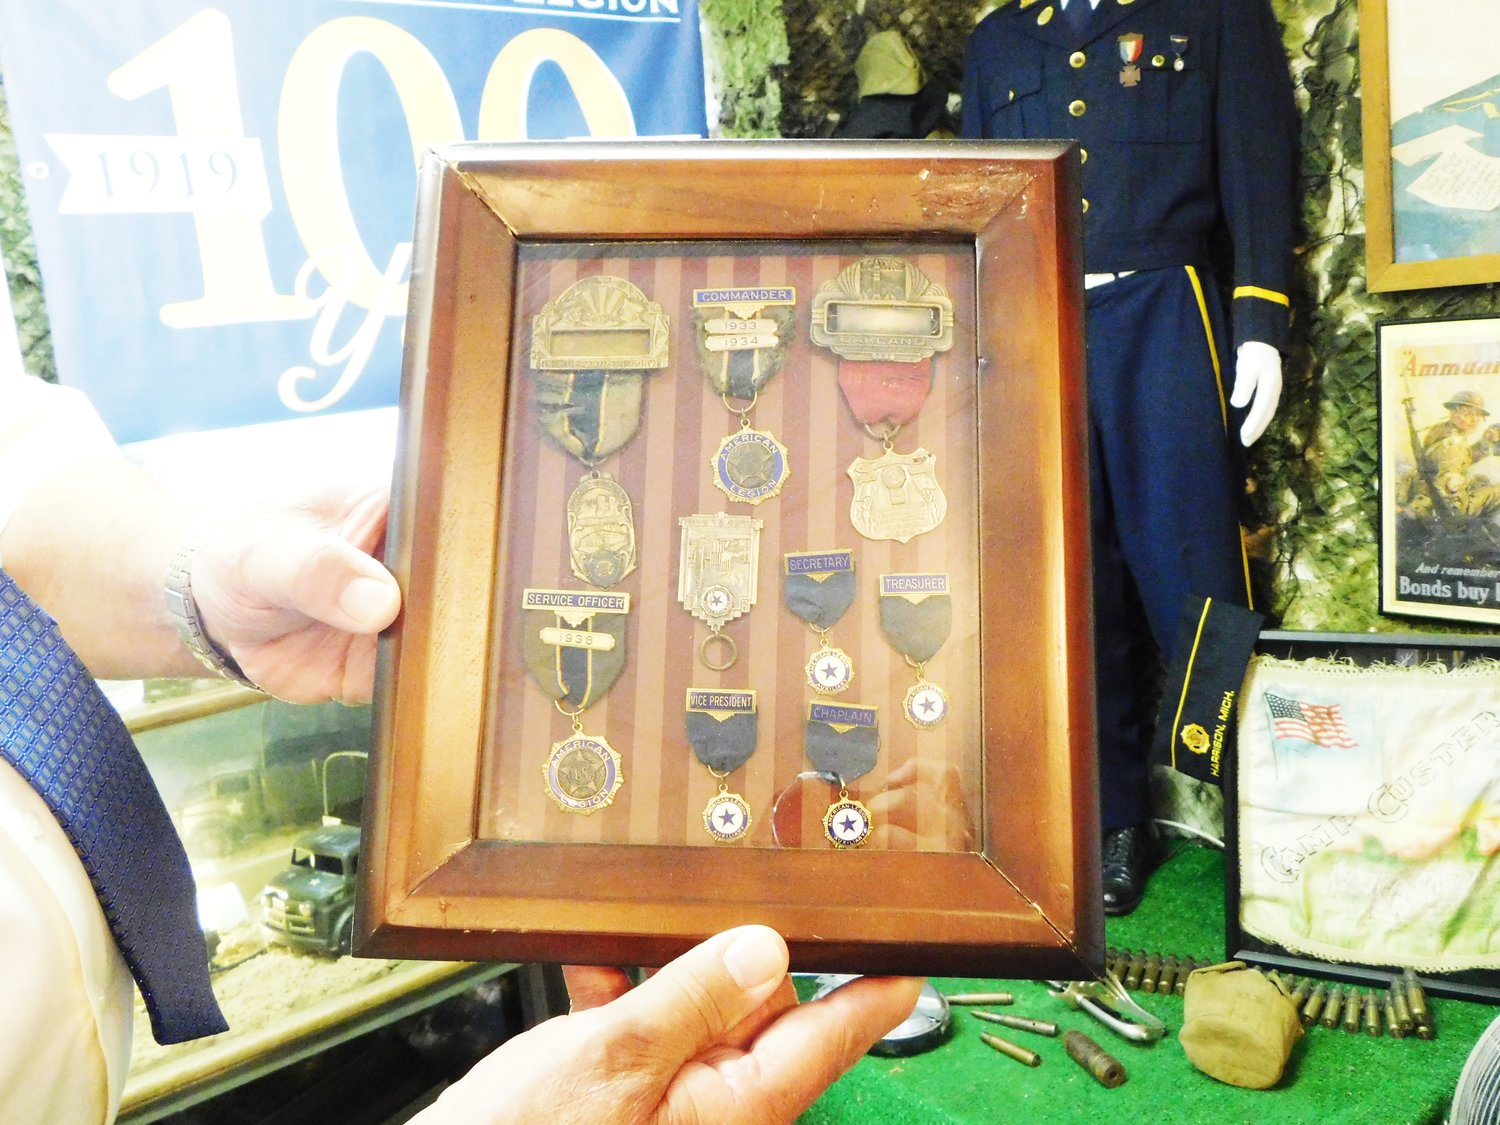 These antique American Legion insignia pins, uniforms and memorabilia shown here can only hint at the many interesting and informative items included in the Veterans Display's 100th year celebration of the American Legion.